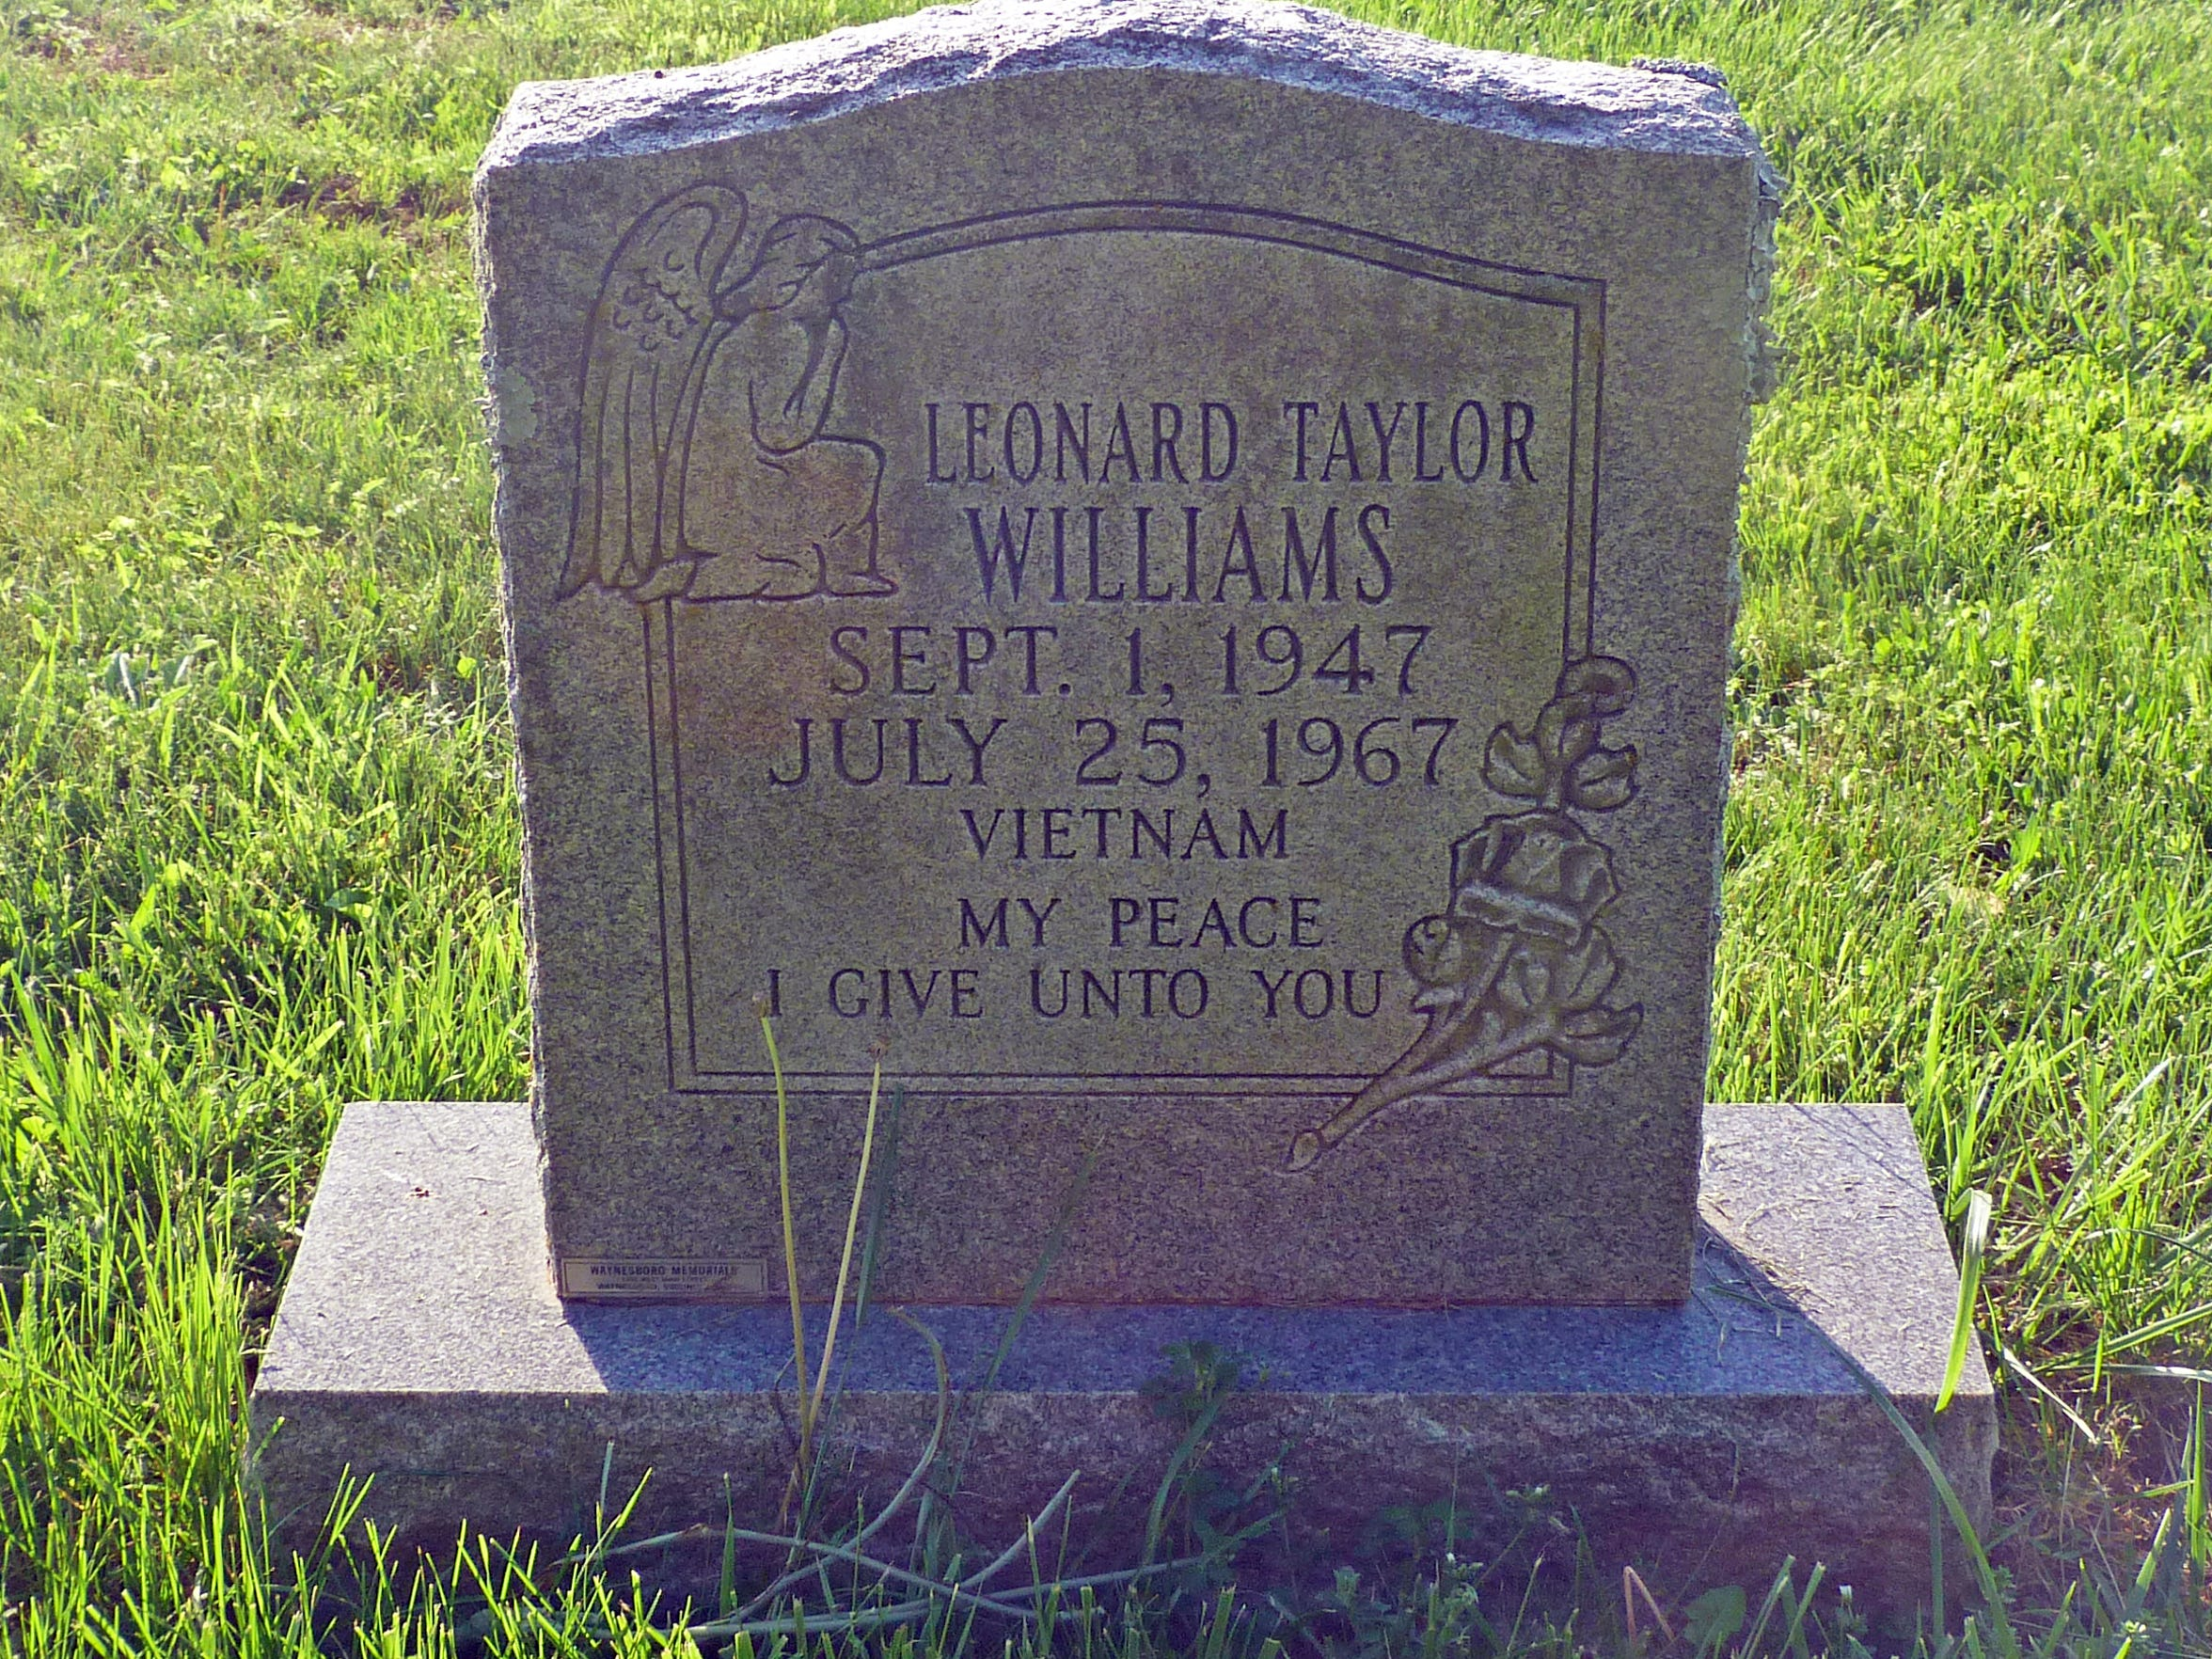 Leonard Taylor Williams was laid to rest in the cemetery of his family's church, Mt. Marine Baptist Church.